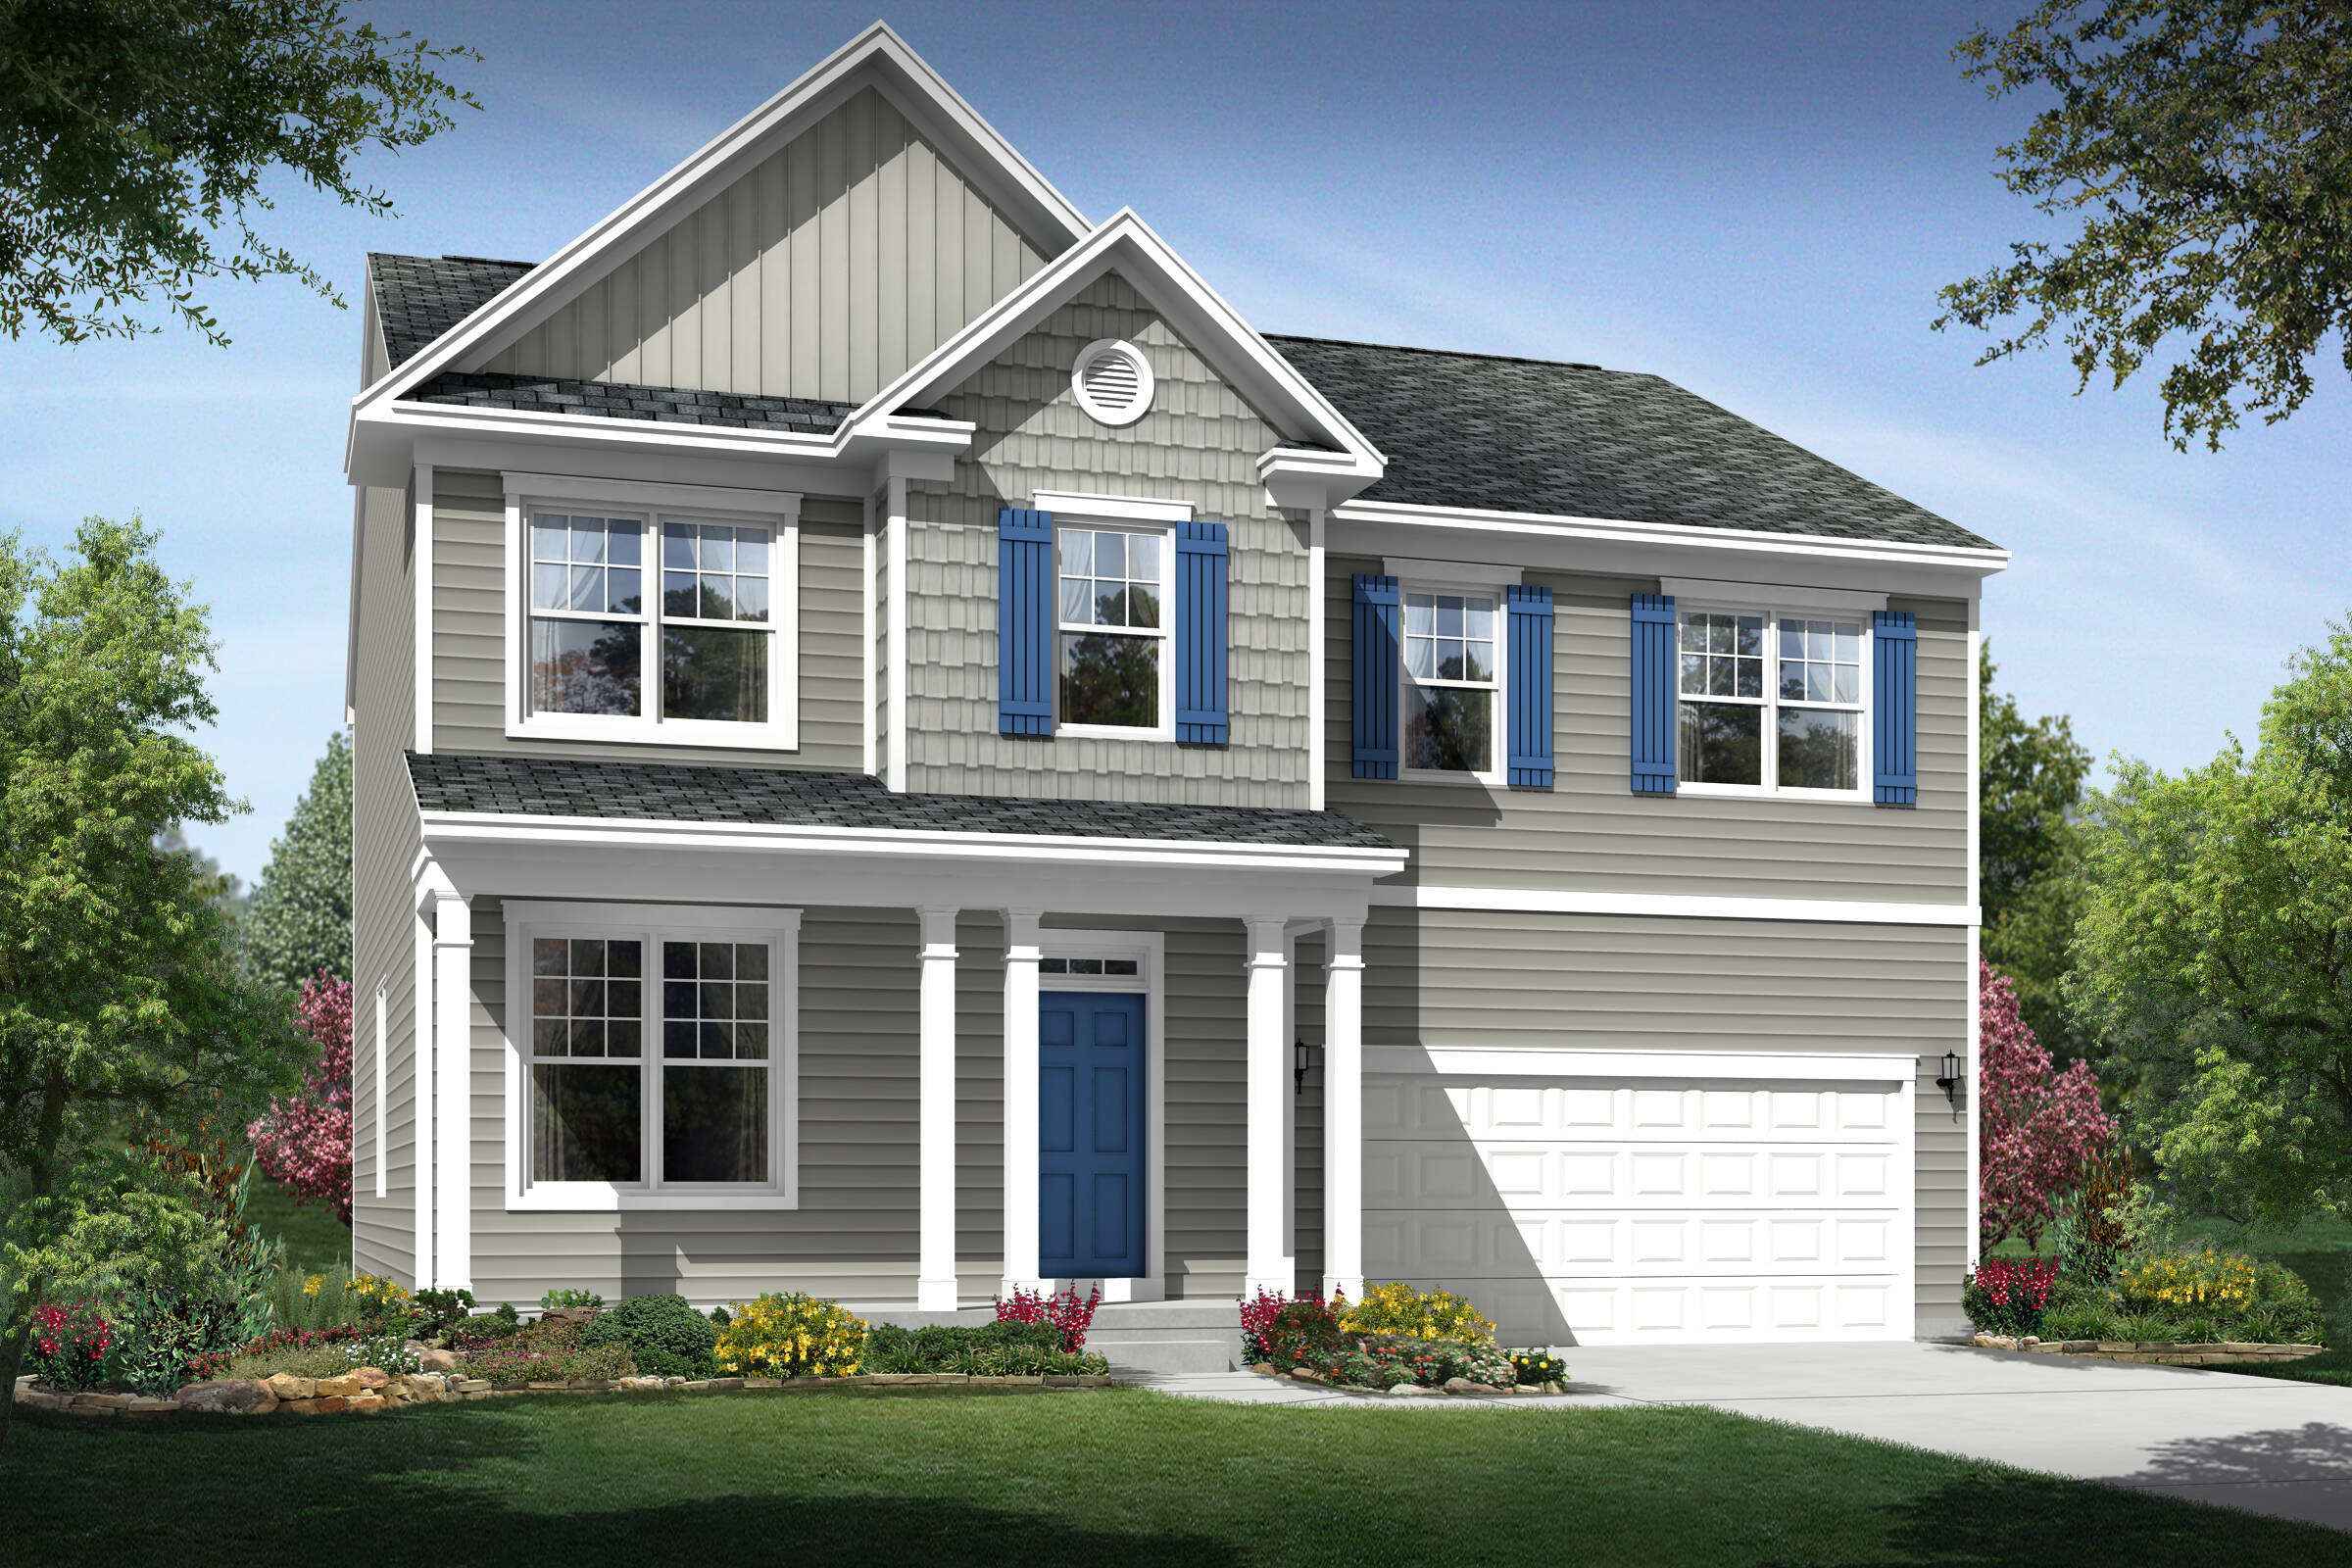 tomasen d2 new home designs in northeast ohio